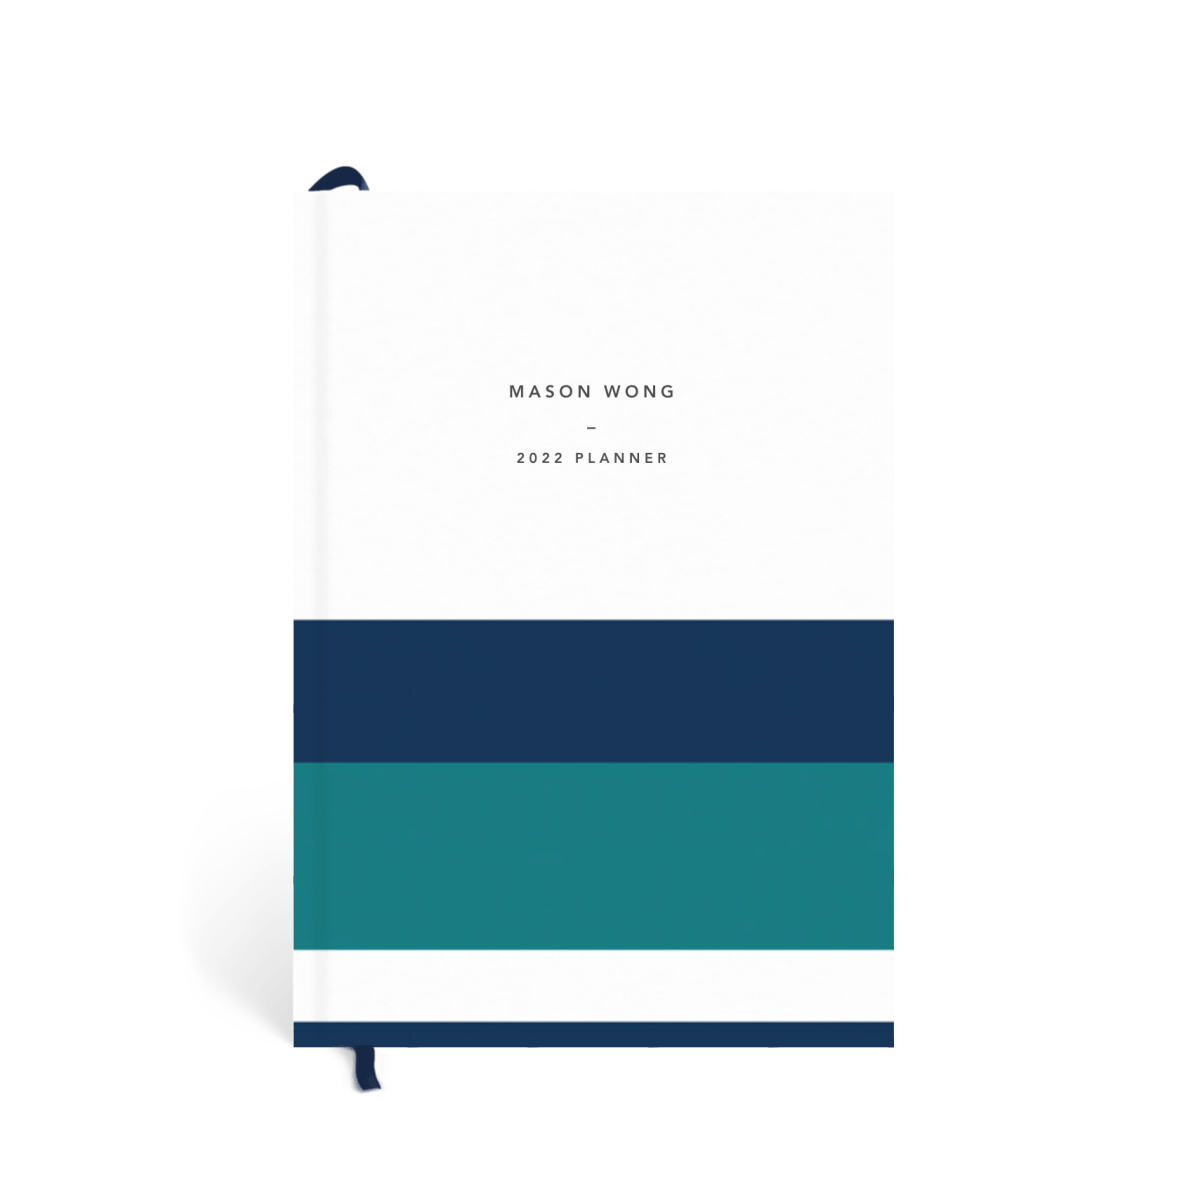 Https%3a%2f%2fwww.papier.com%2fproduct image%2f90128%2f36%2fstriped colourblock navy 22544 front 1569935829.png?ixlib=rb 1.1